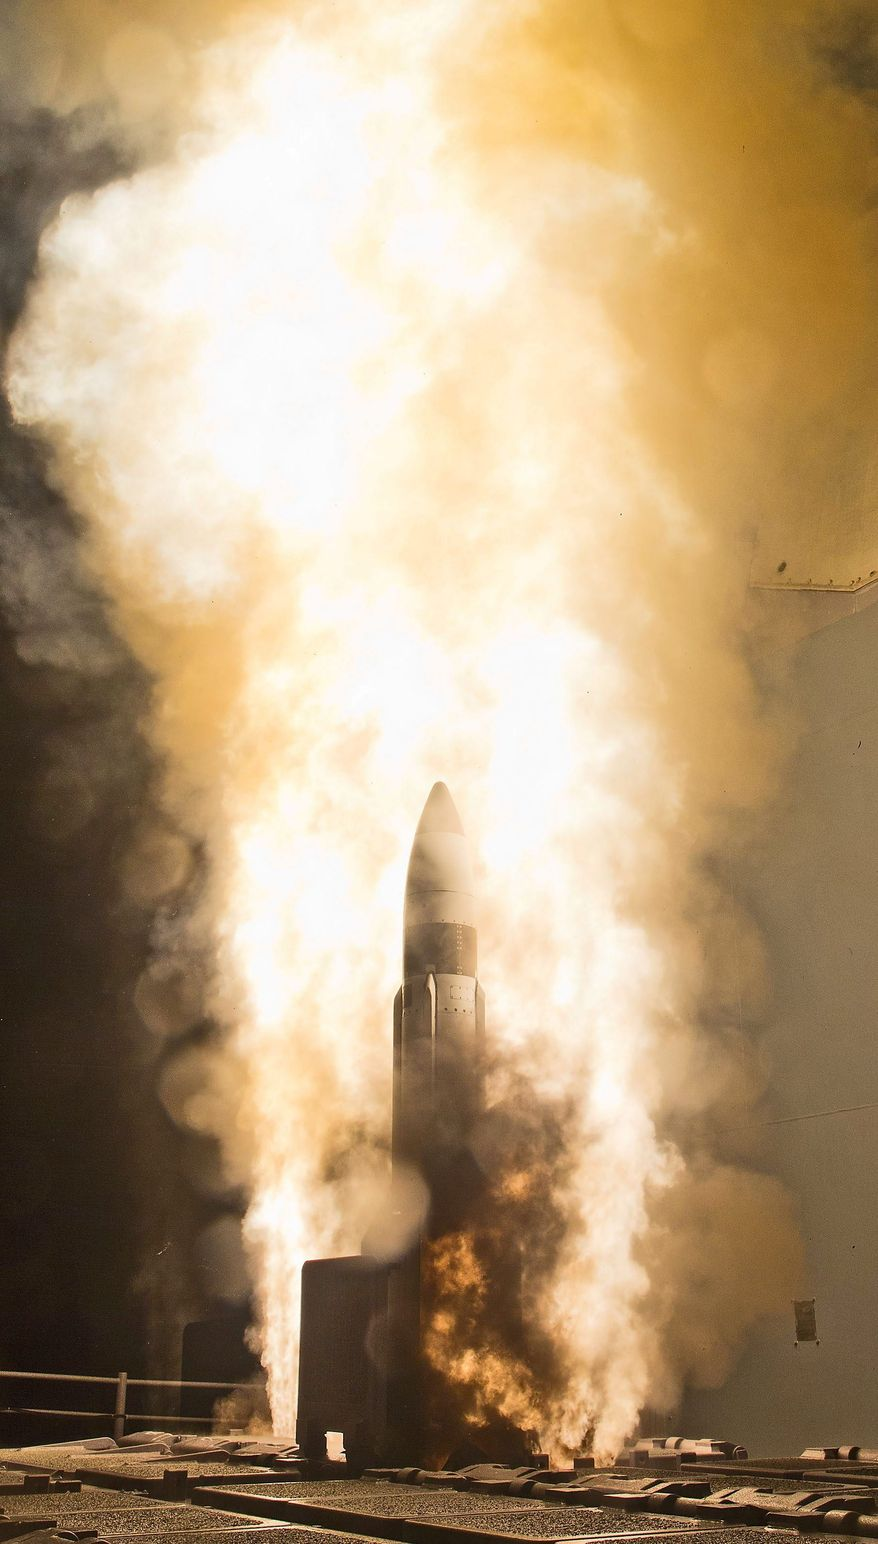 A Standard Missile-3 interceptor, like this one launched from a Navy Aegis cruiser, hit a medium-range target missile over the Pacific on Tuesday. (U.S. Navy photograph)